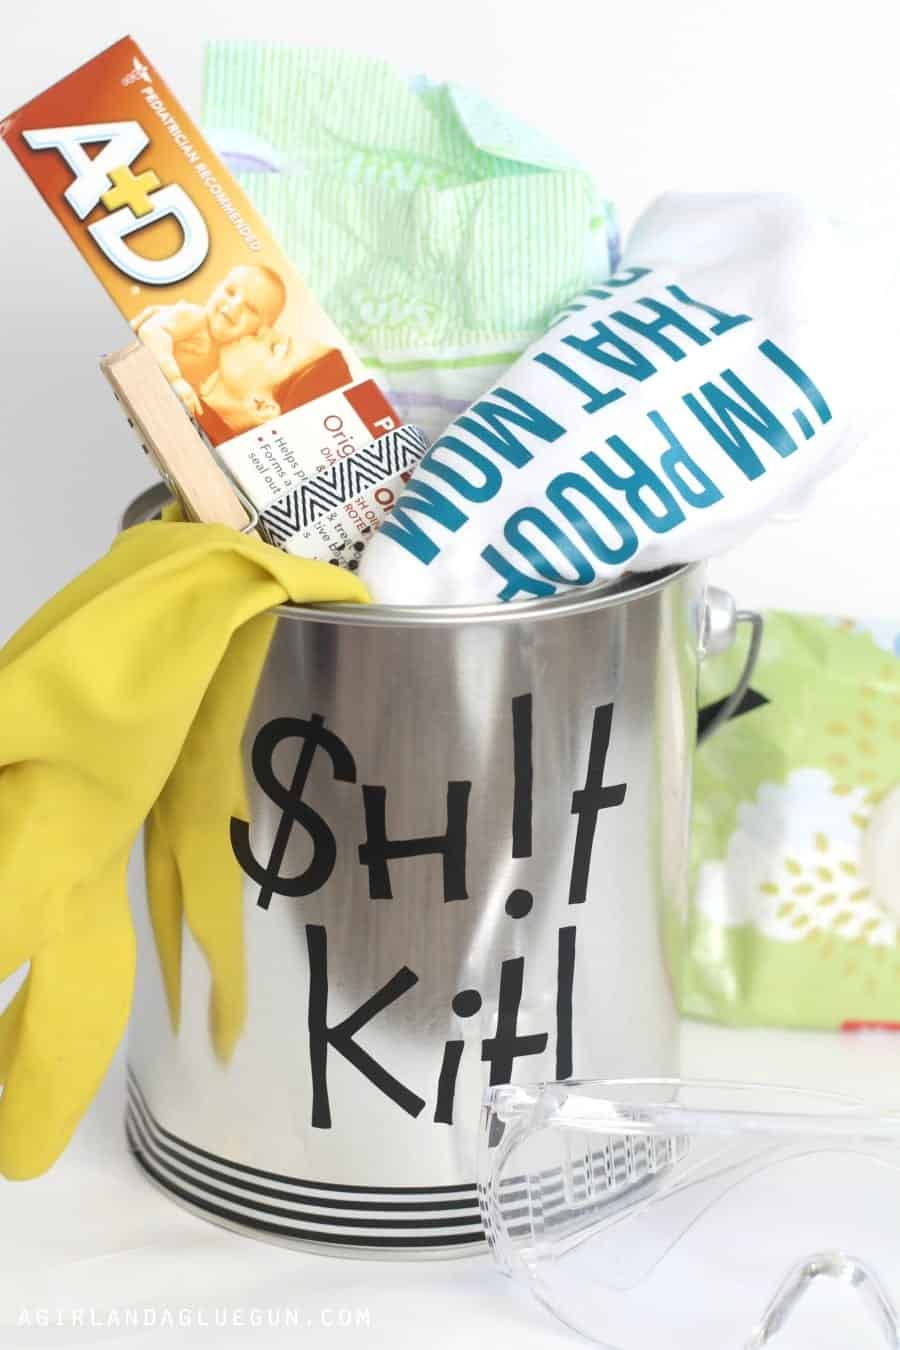 sh$ kit for baby shower gift